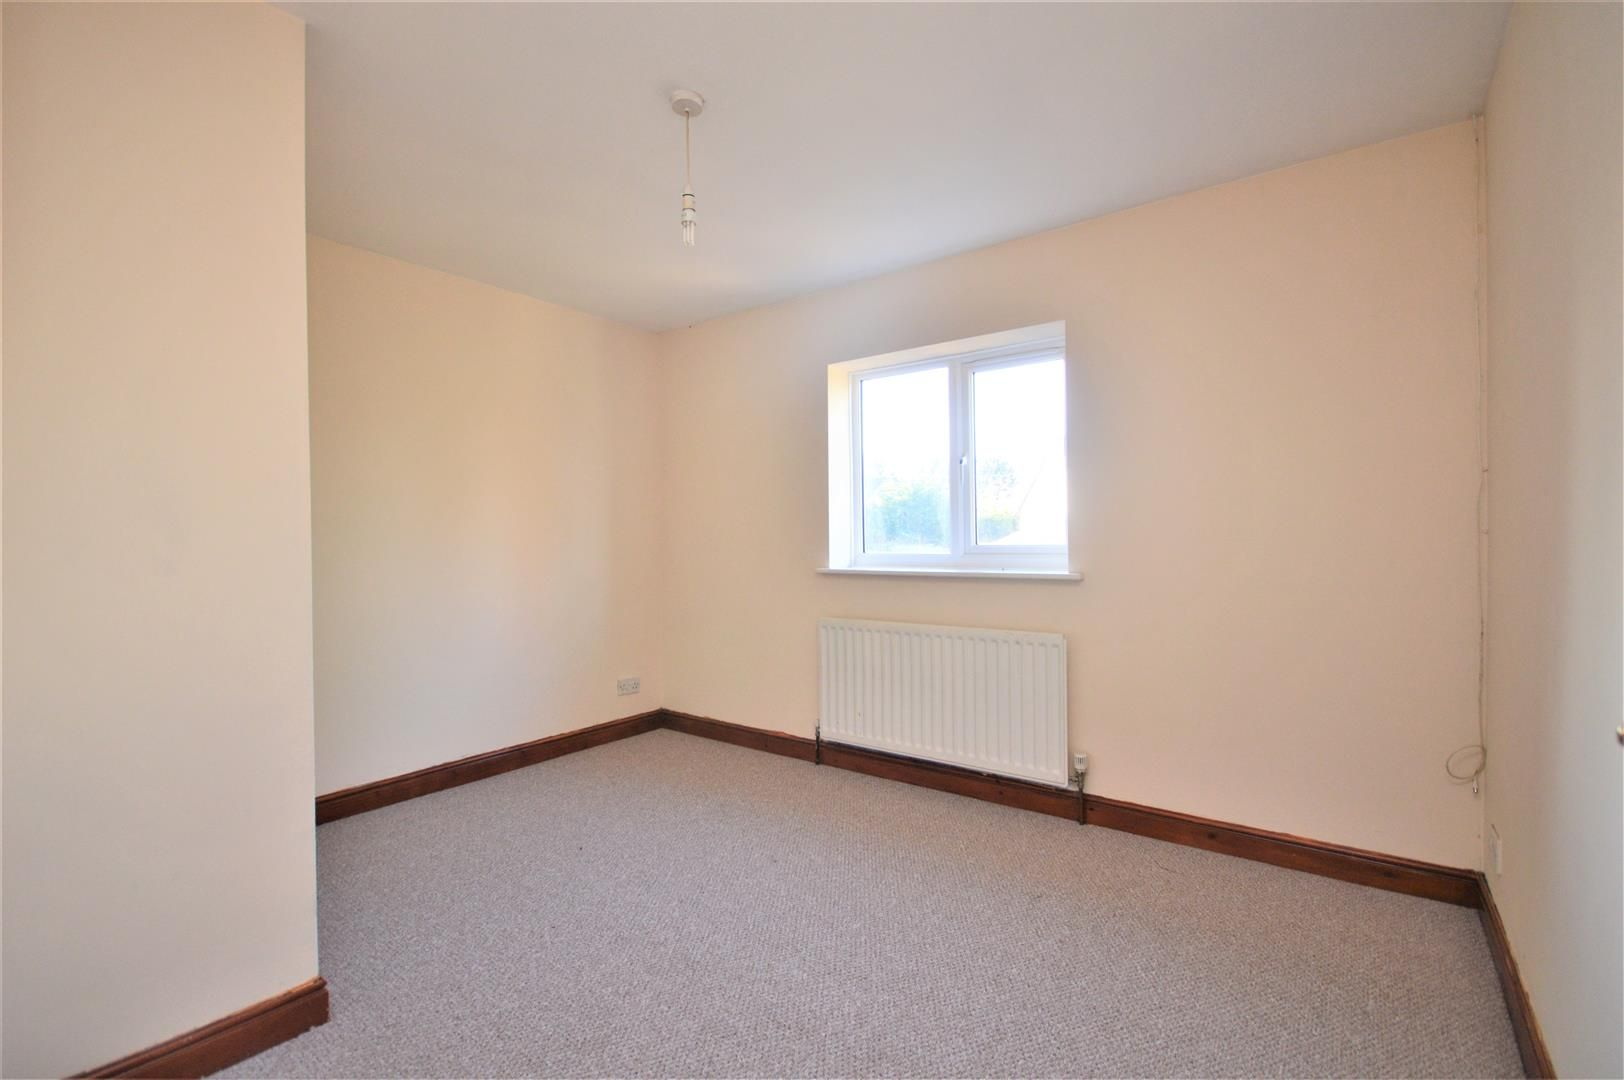 2 bed terraced for sale in Lower Bullingham 8